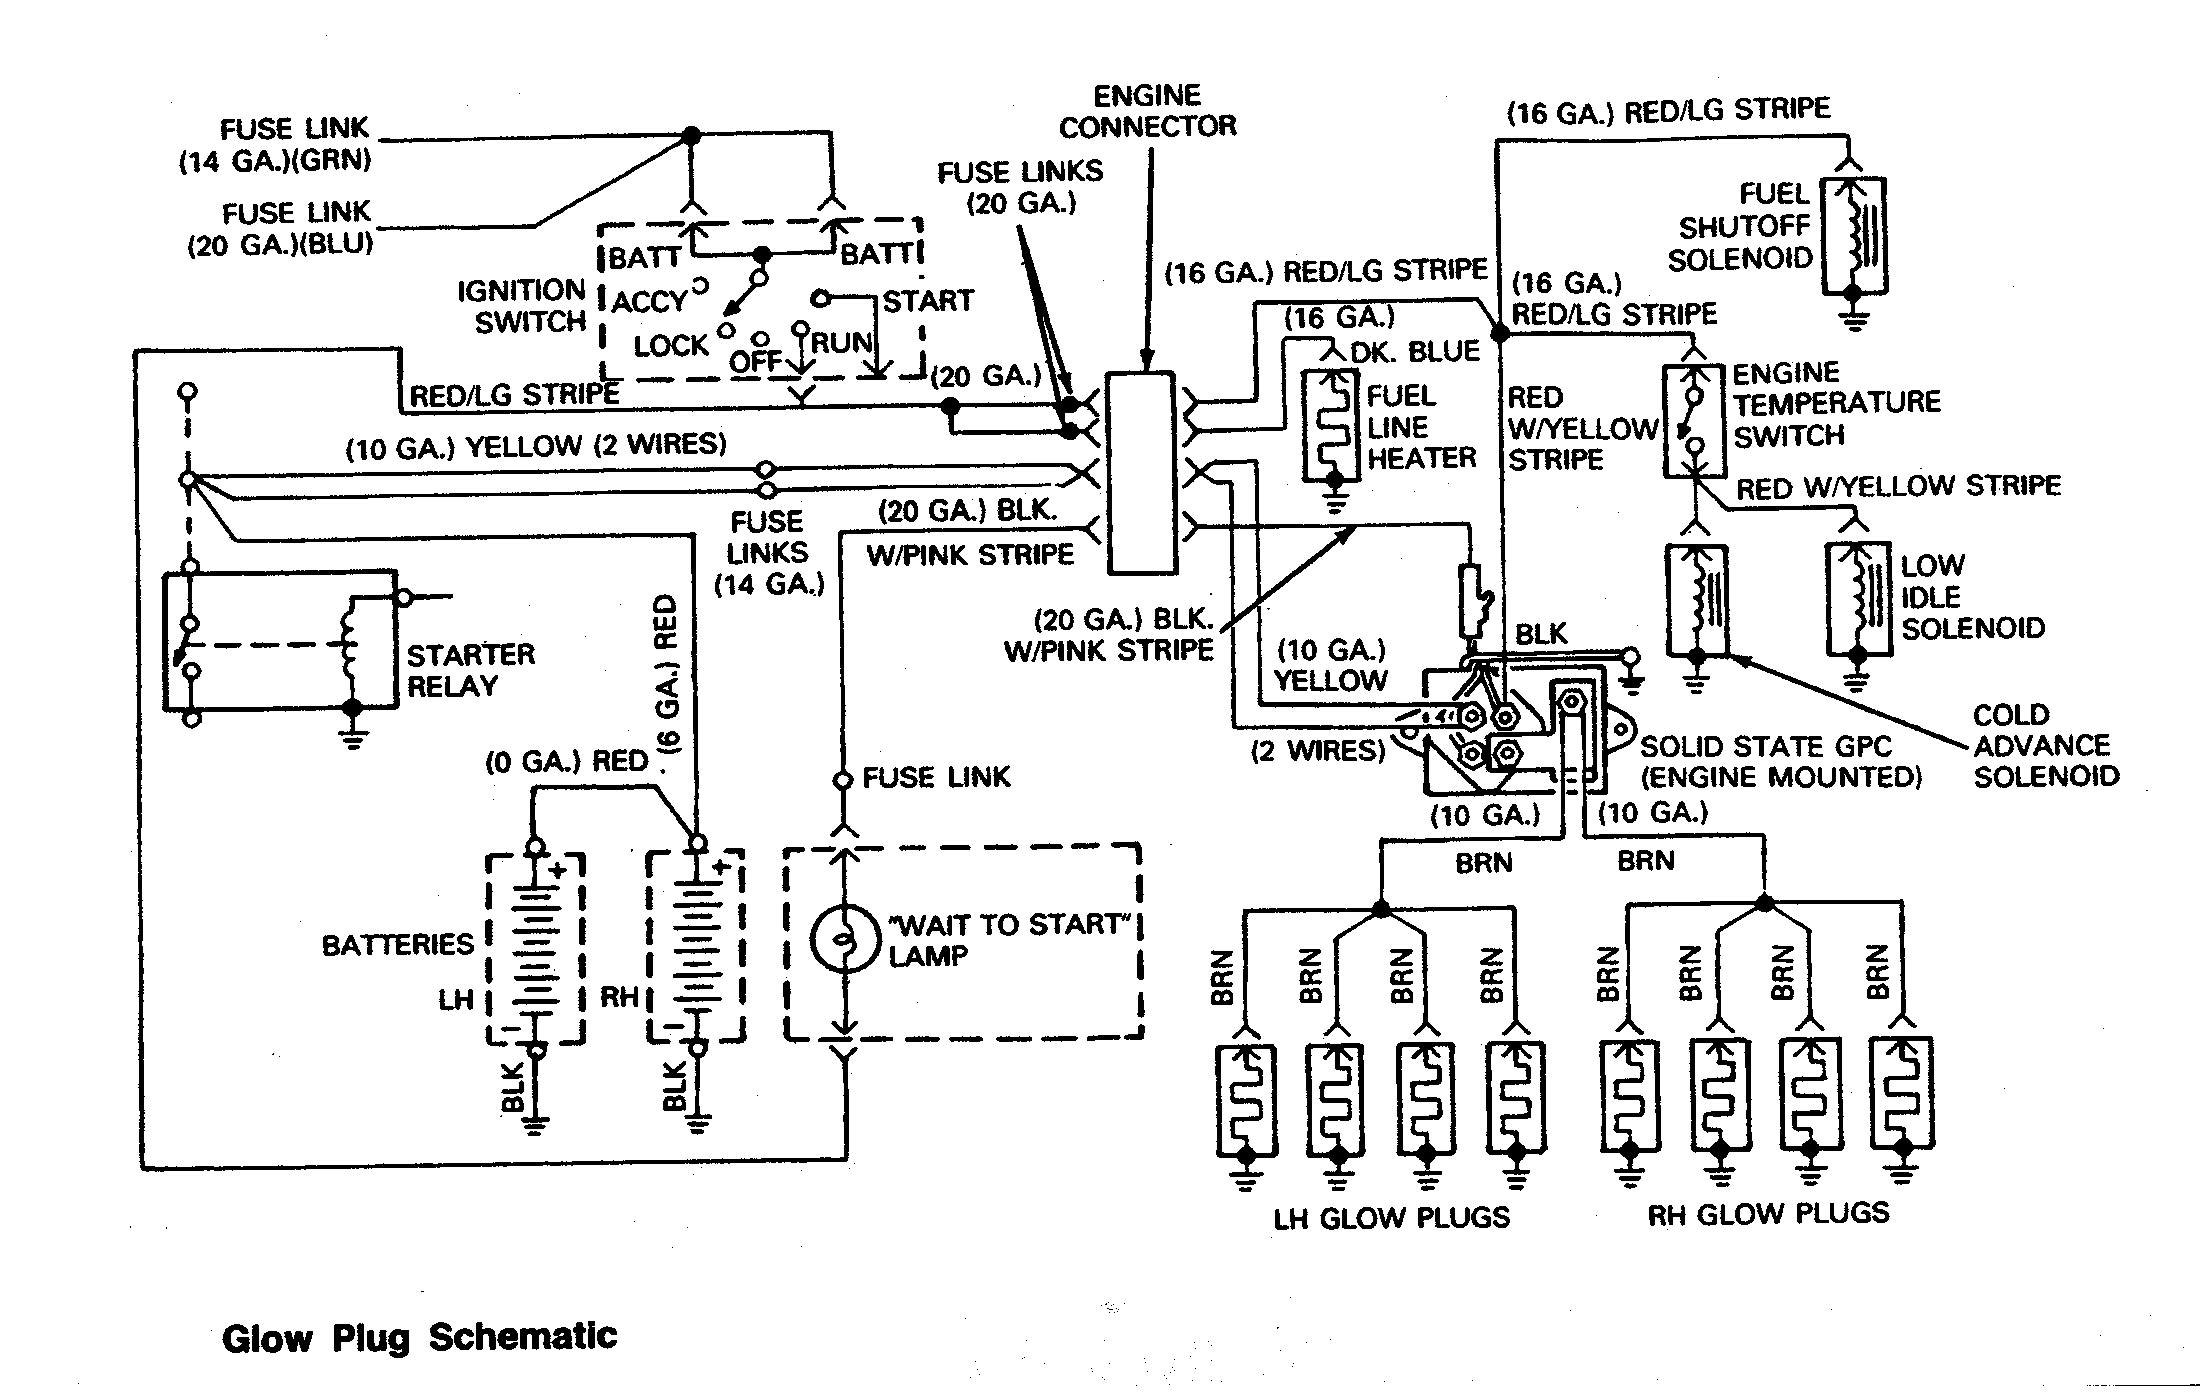 Schematic For 2001 F550 Fuse Wiring Diagrams Ford F 550 Diagram Engine And Jet Drive Specs Pricing